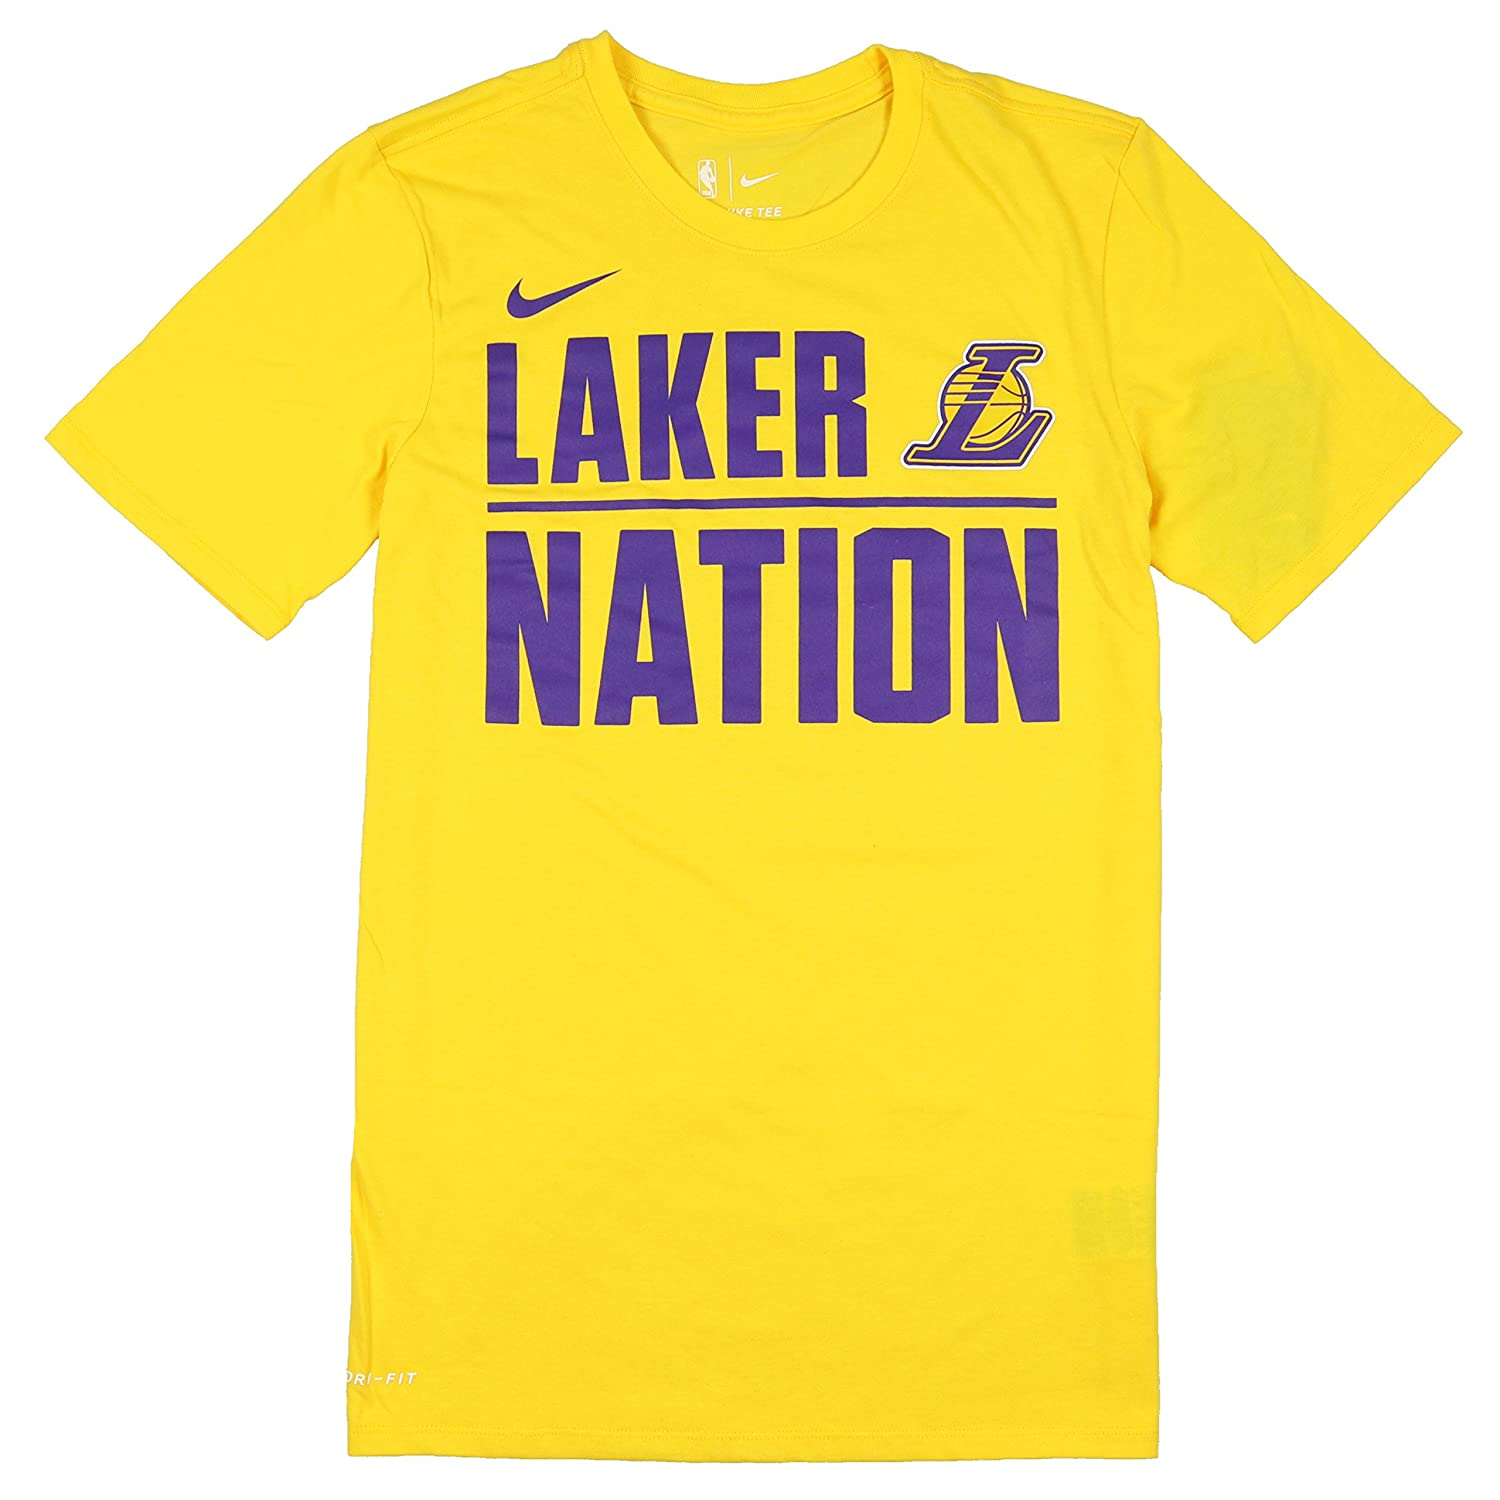 most fashionable 50% price diversified latest designs Amazon.com : Nike Men's Los Angeles Lakers Laker Nation T ...